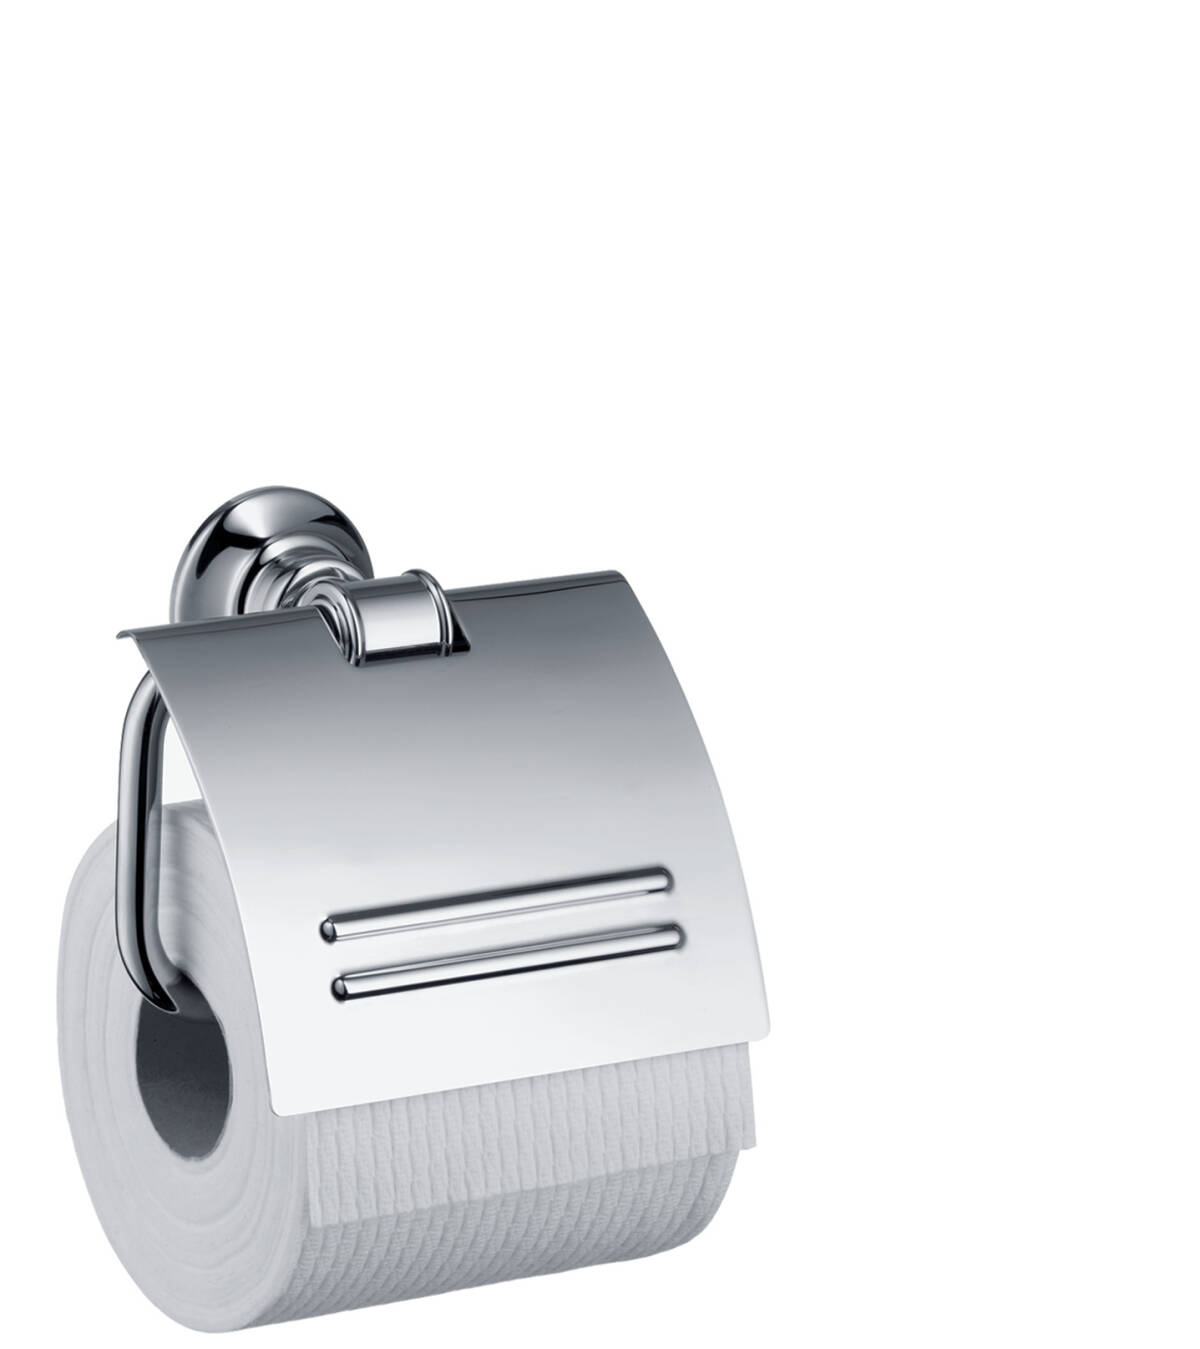 Roll holder with cover, Chrome, 42036000